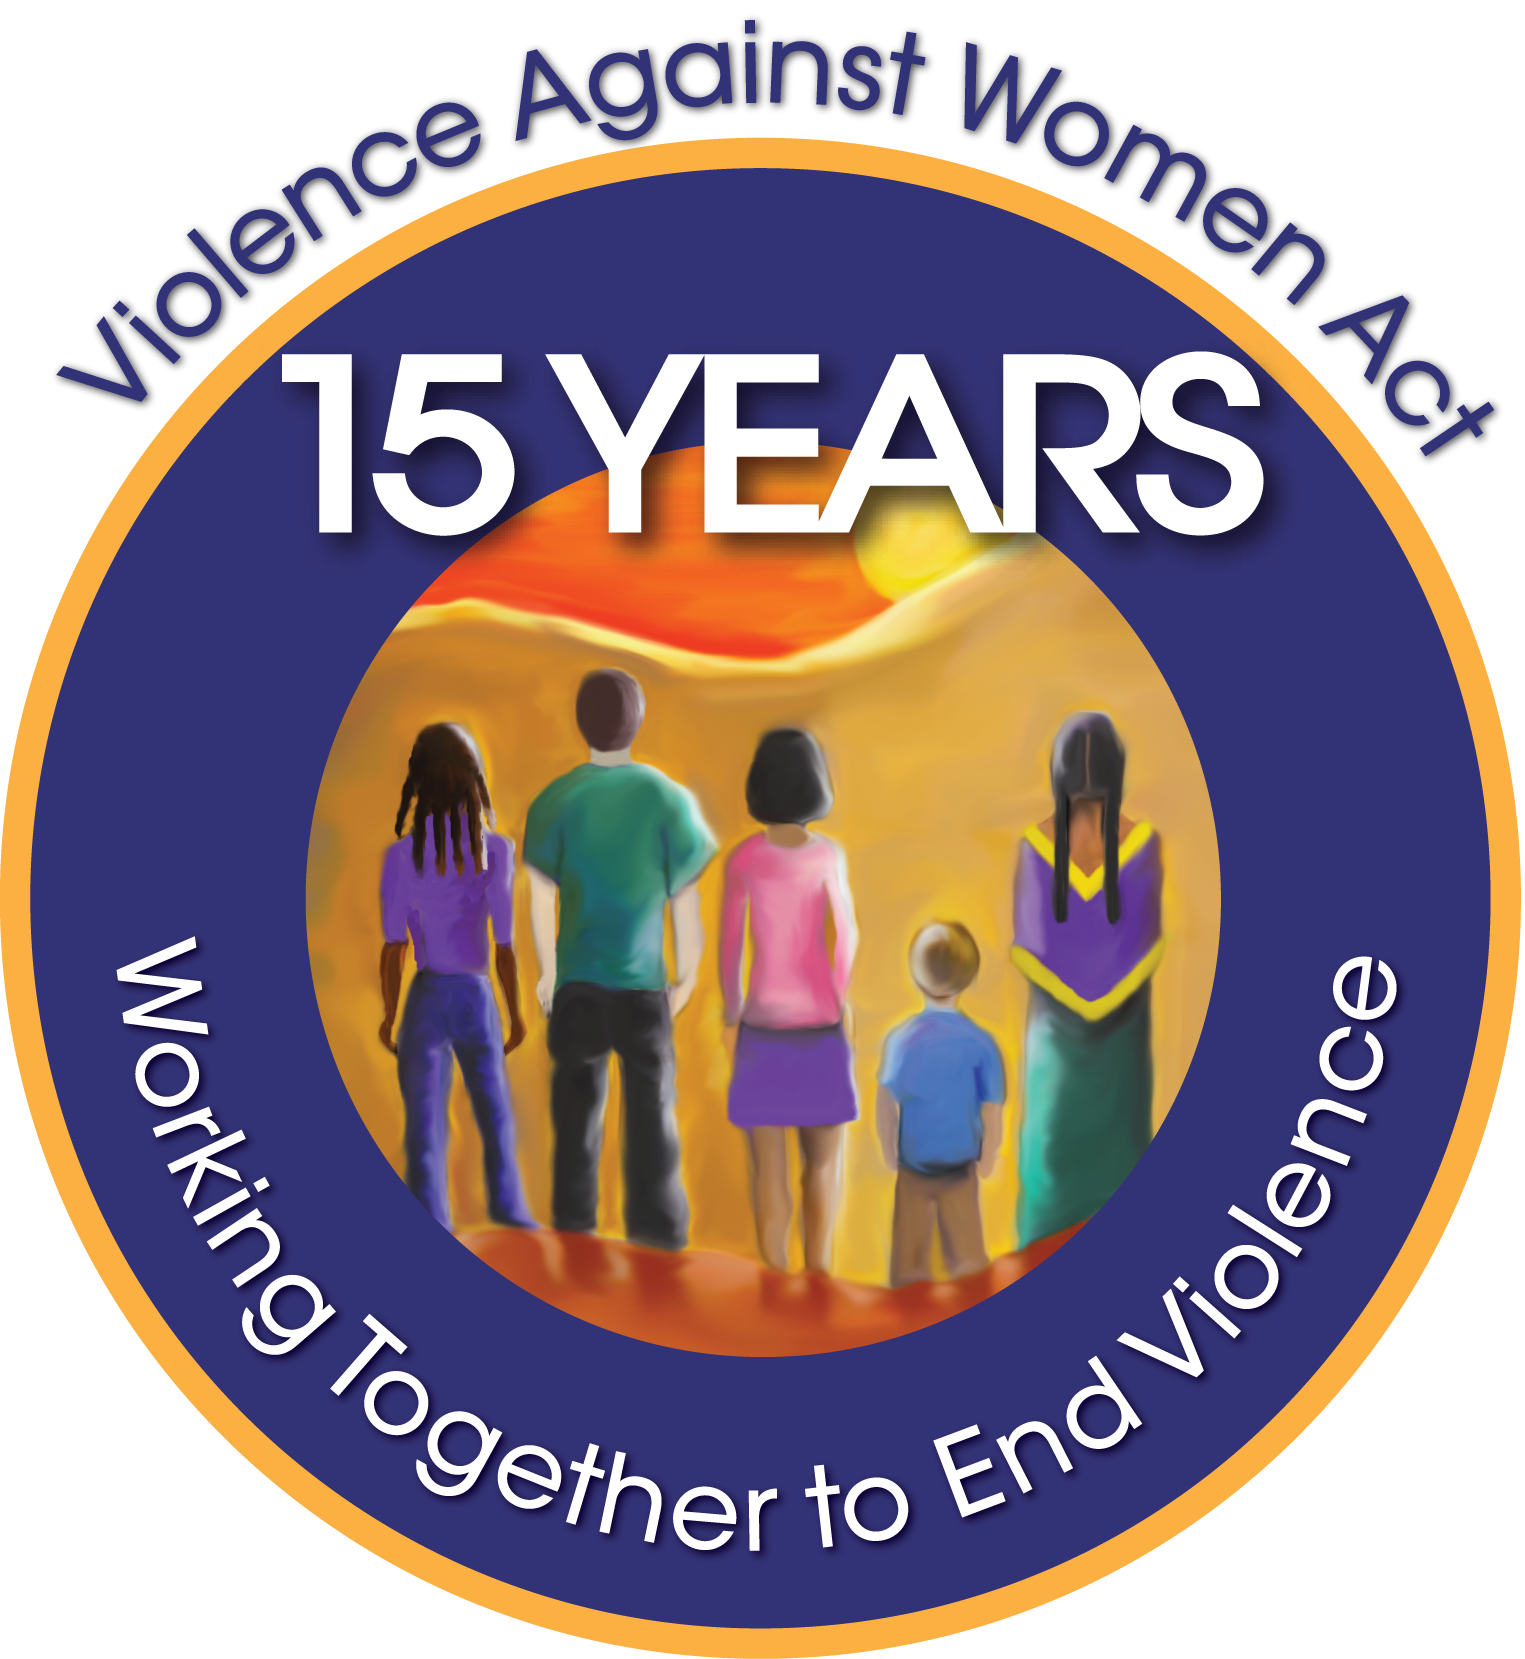 Violence Against Women Act: 15 Years, Working Together to End Violence